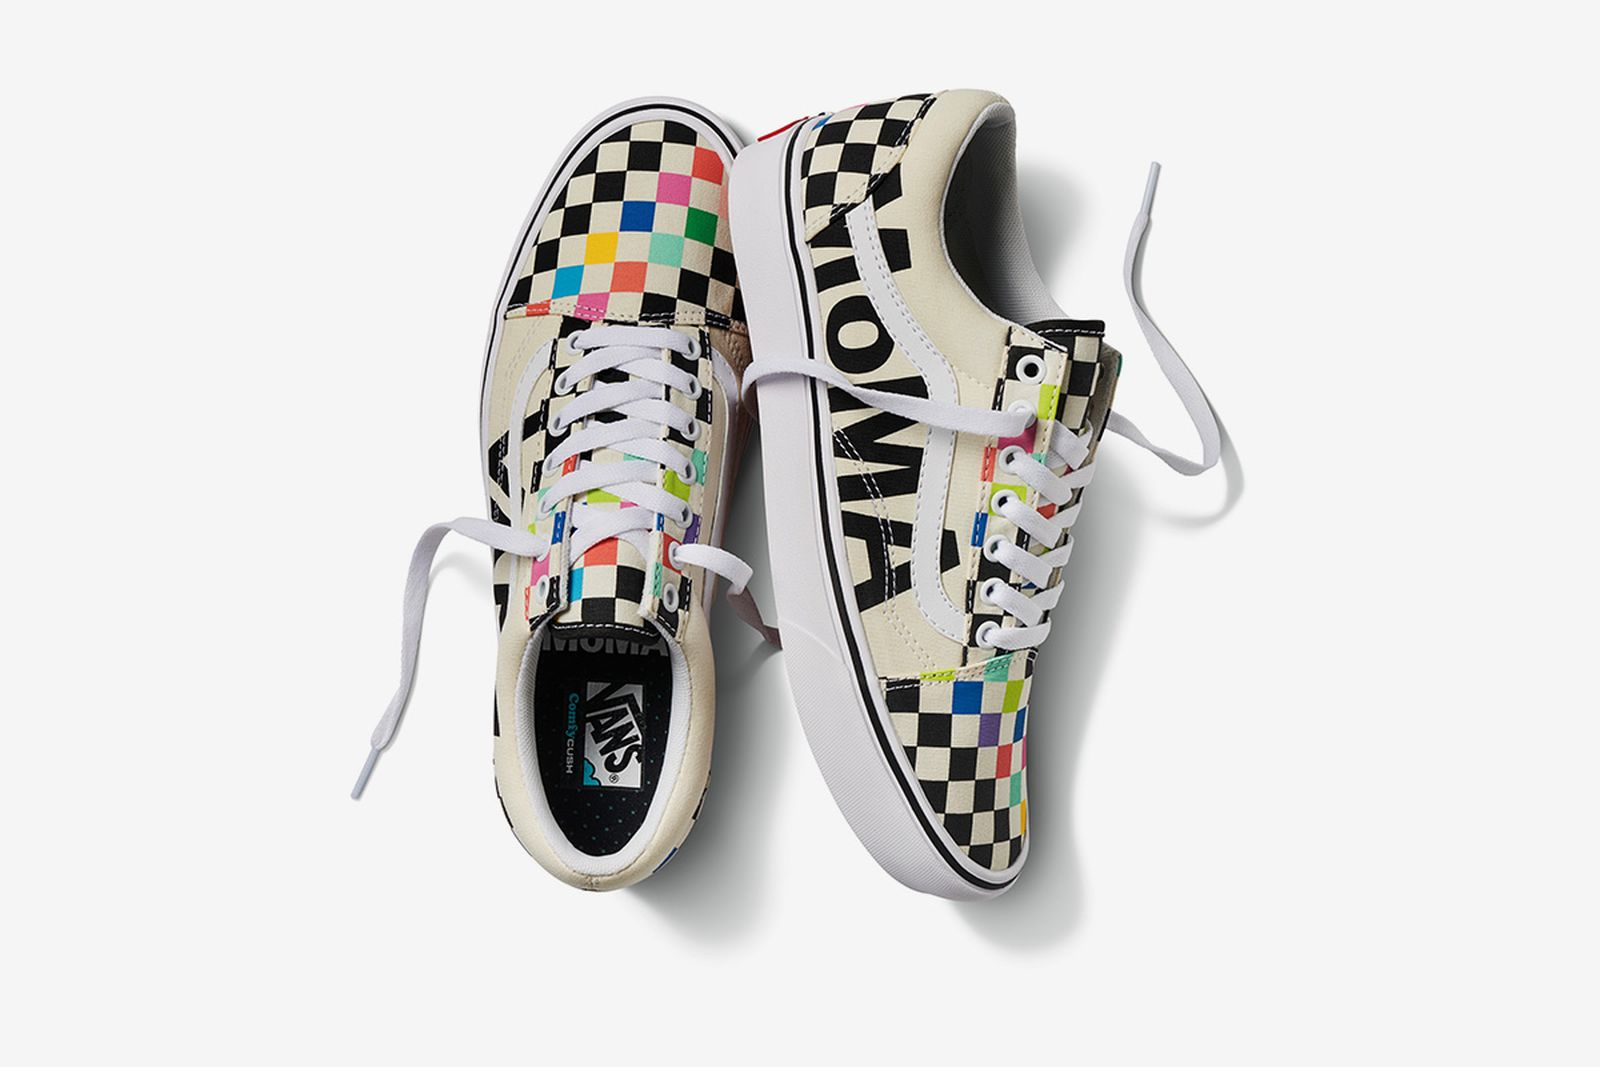 vans-moma-fall-2020-release-date-price-1-04